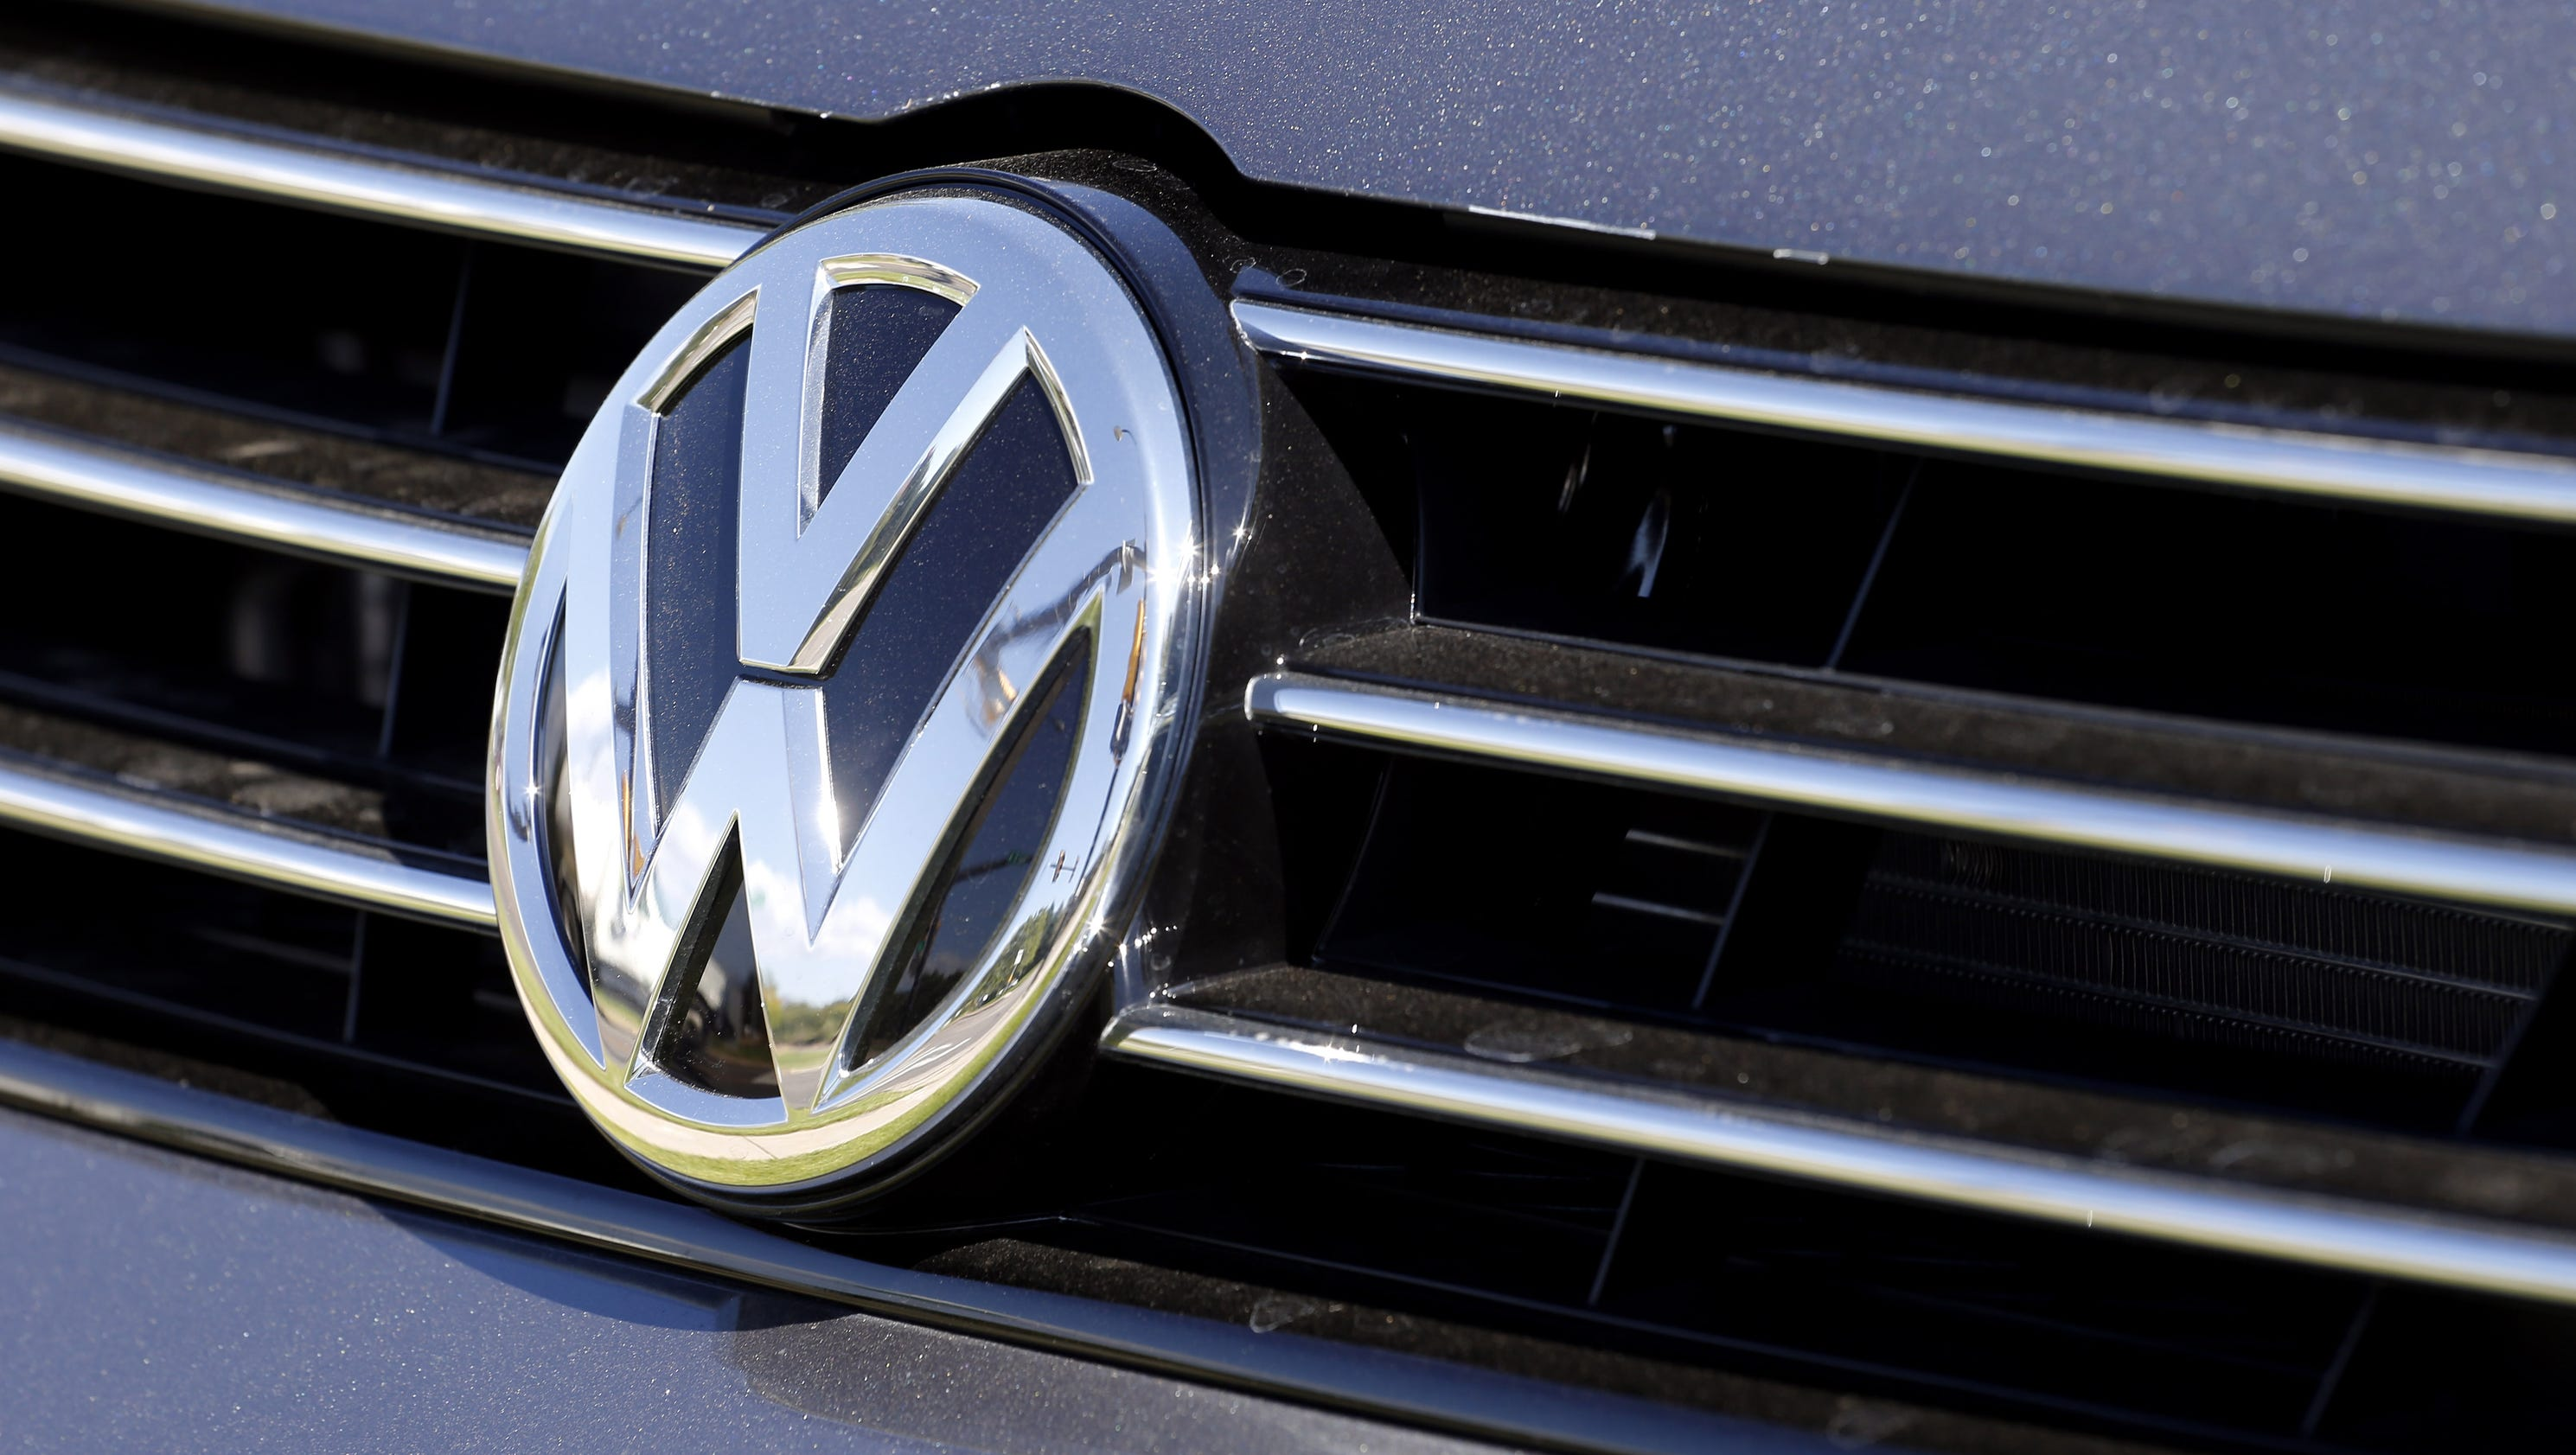 justice department alleges vw violated clean air act